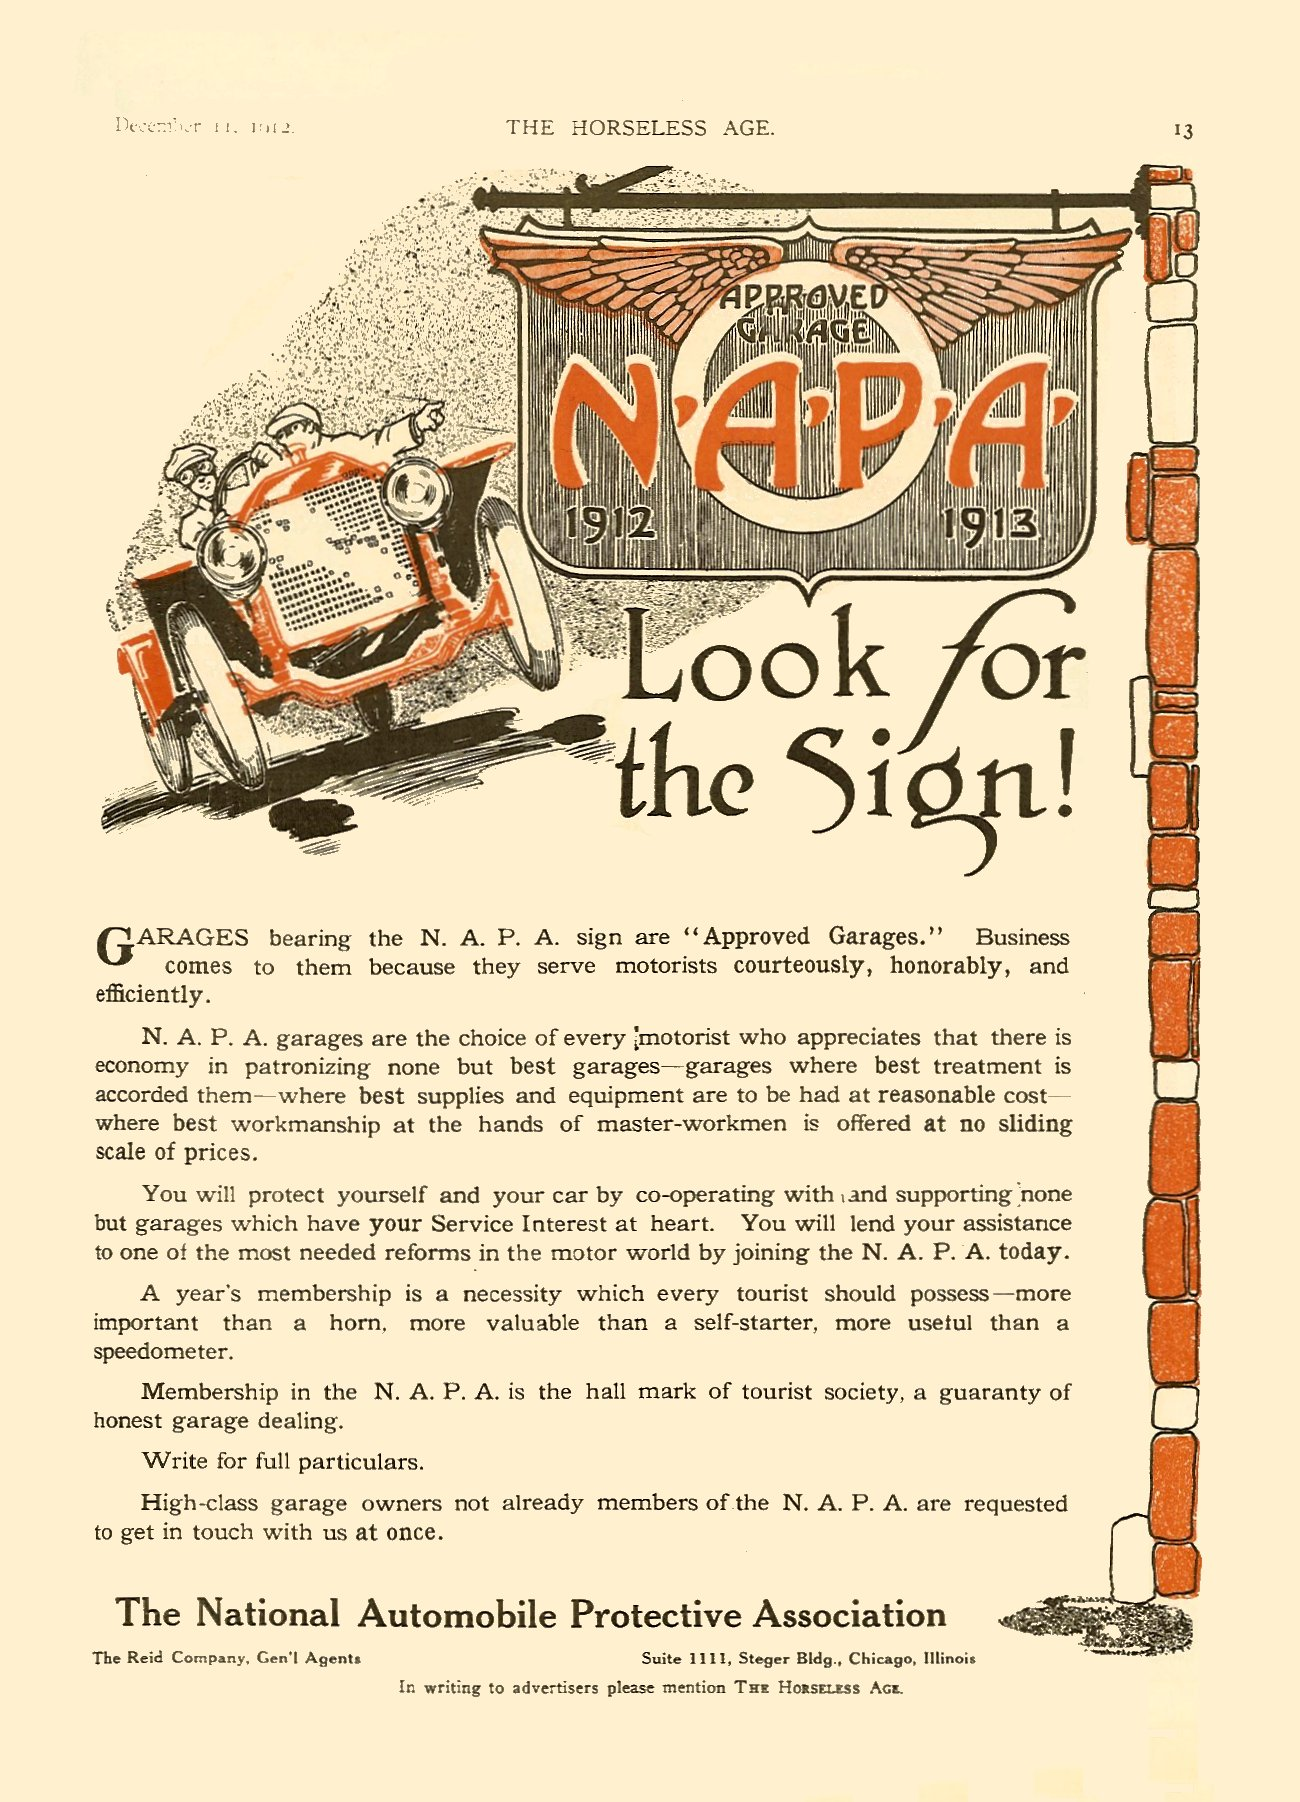 """1912 12 11 N.A.P.A. 1913 (National Automobile Protective Association) """"Look for the Sign!"""" THE HORSELESS AGE Dec 11, 1912 Vol. 30 No. 24 9″x12″ page 13"""